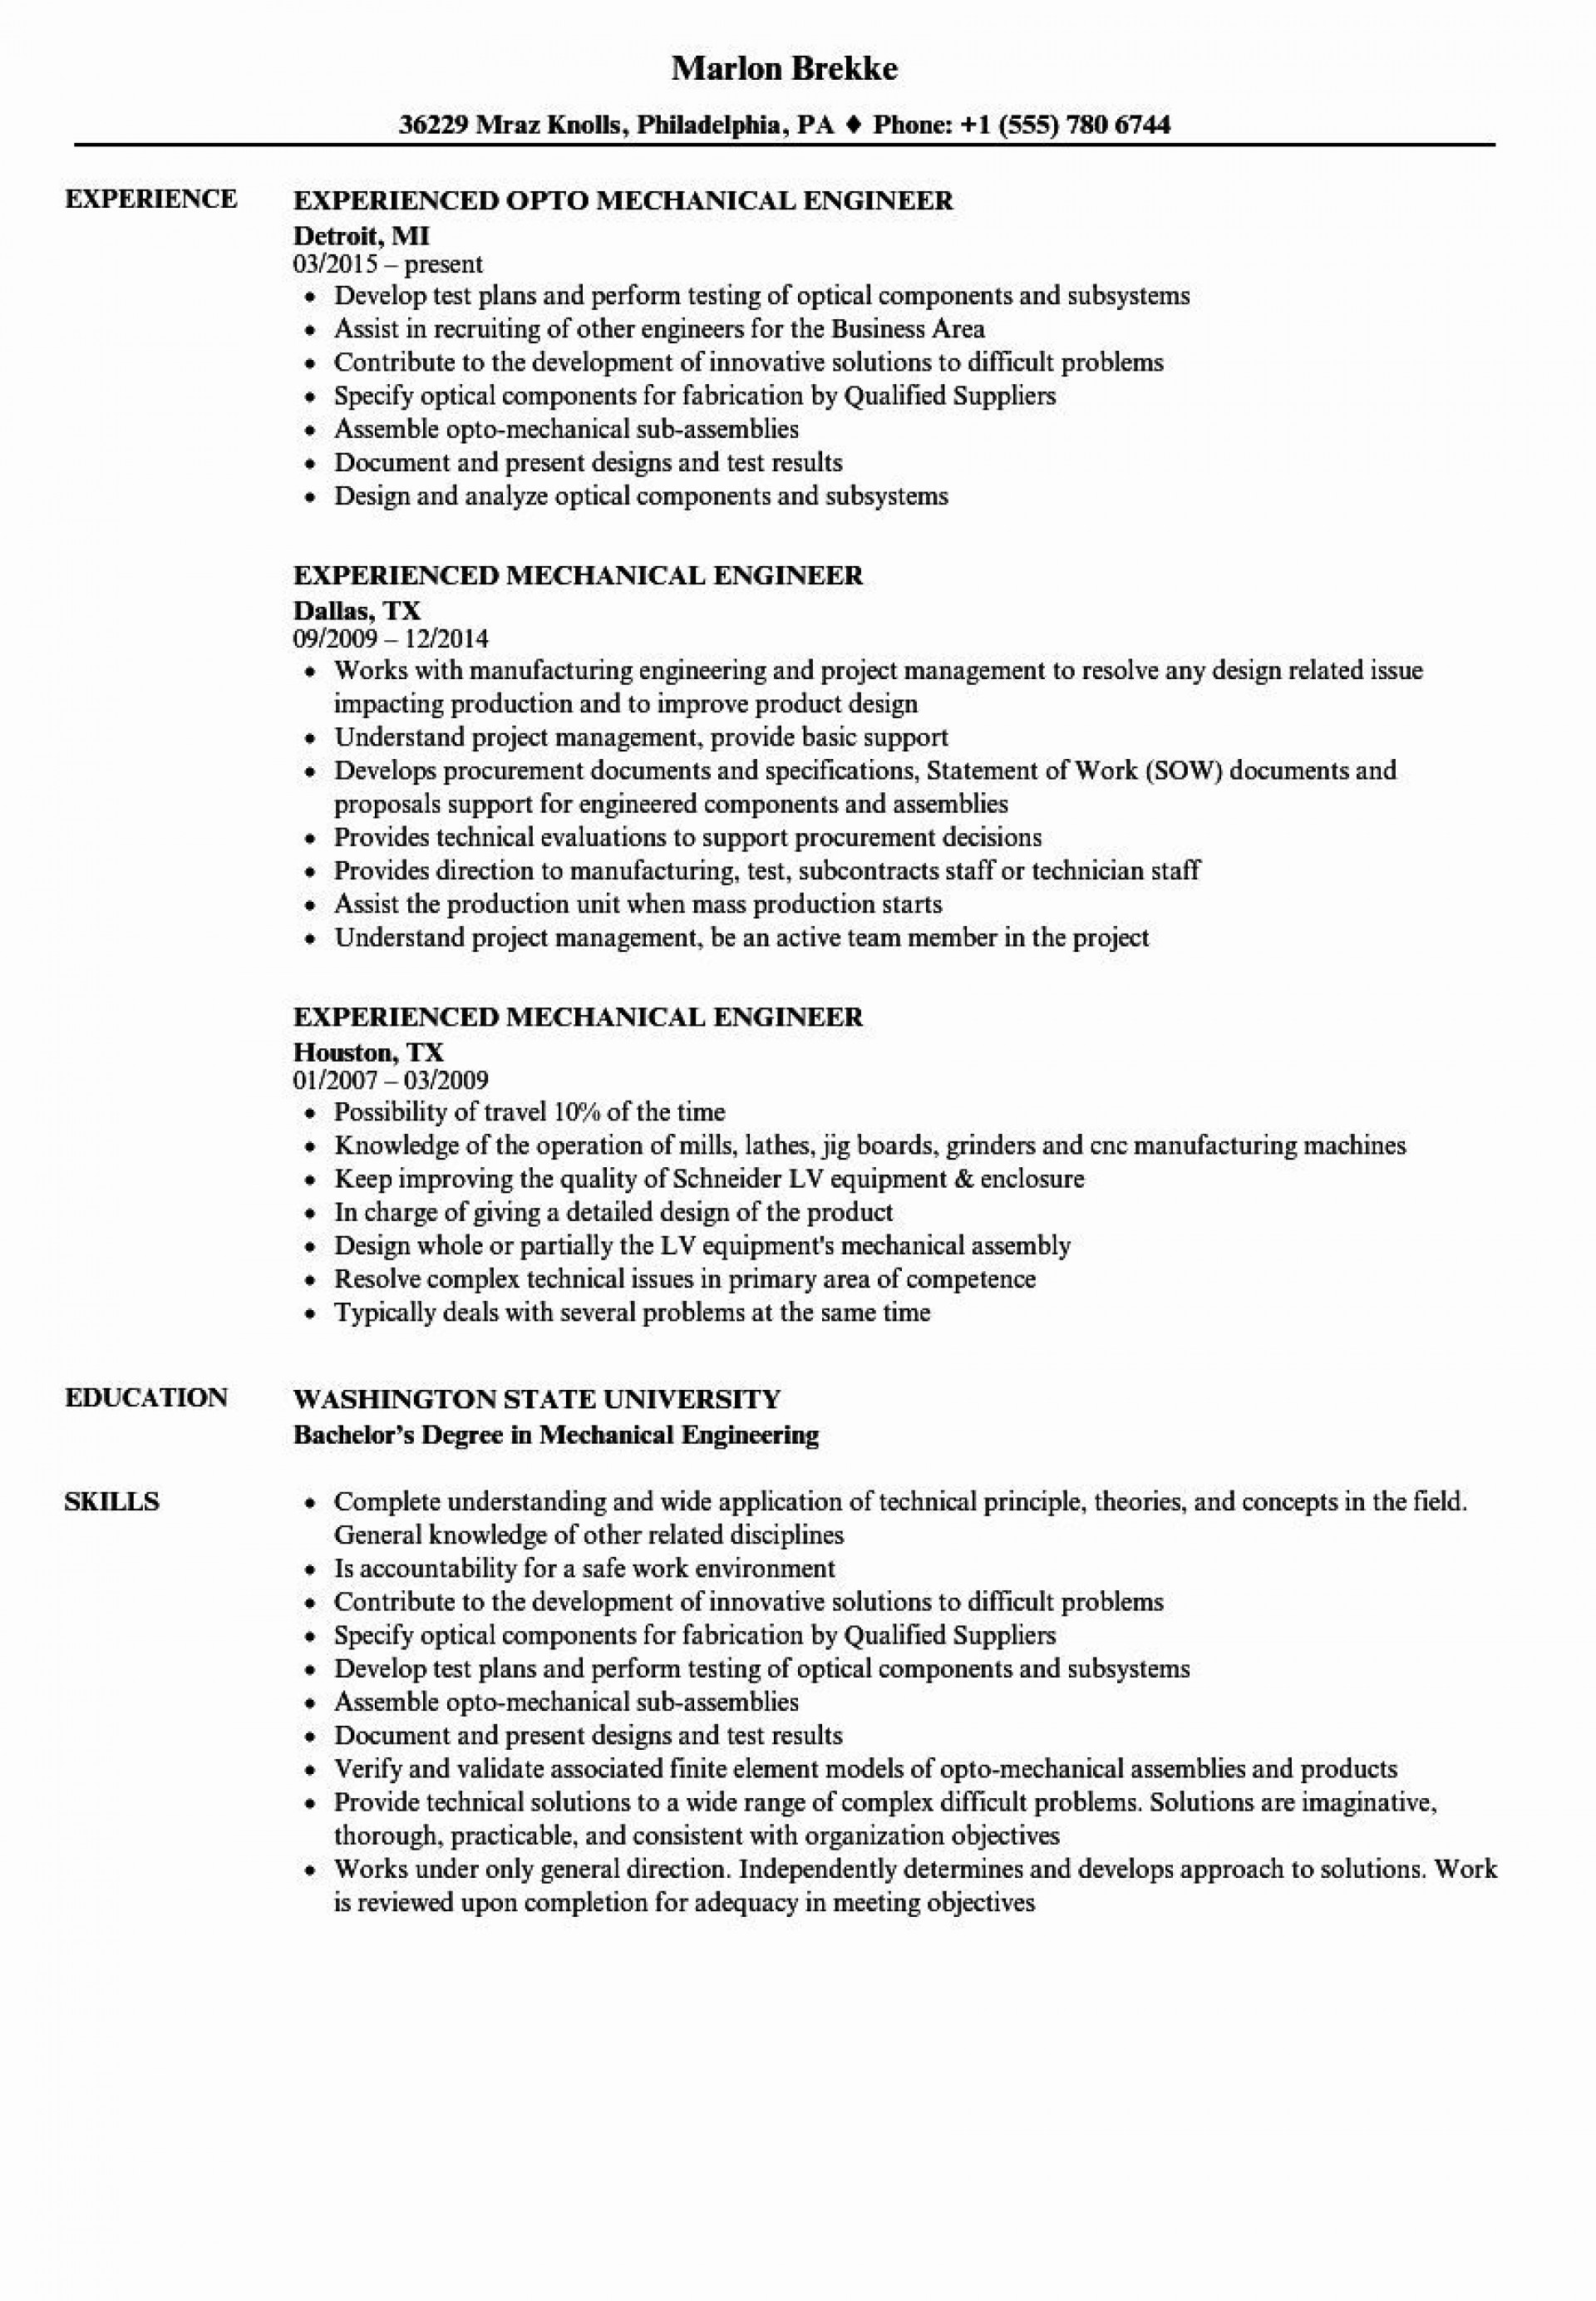 000 Frightening Mechanical Engineering Resume Template Example  Templates Engineer Cv Free Download Diploma Fresher Format Word Document1920